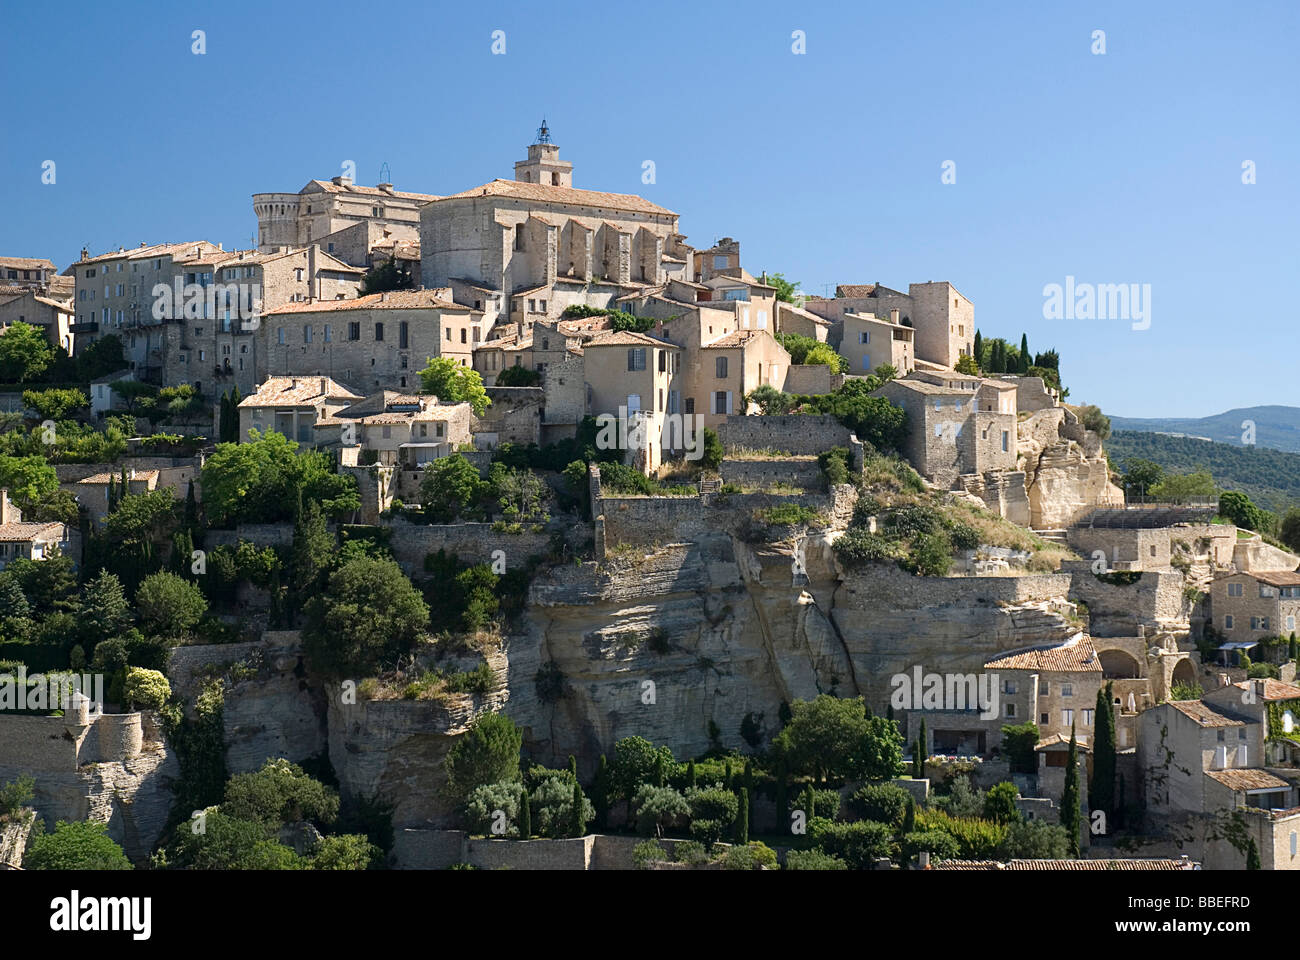 FRANCE Provence Cote d'Azur Vaucluse Gordes Provencal Hilltop village with sixteenth century chateau and church Stock Photo